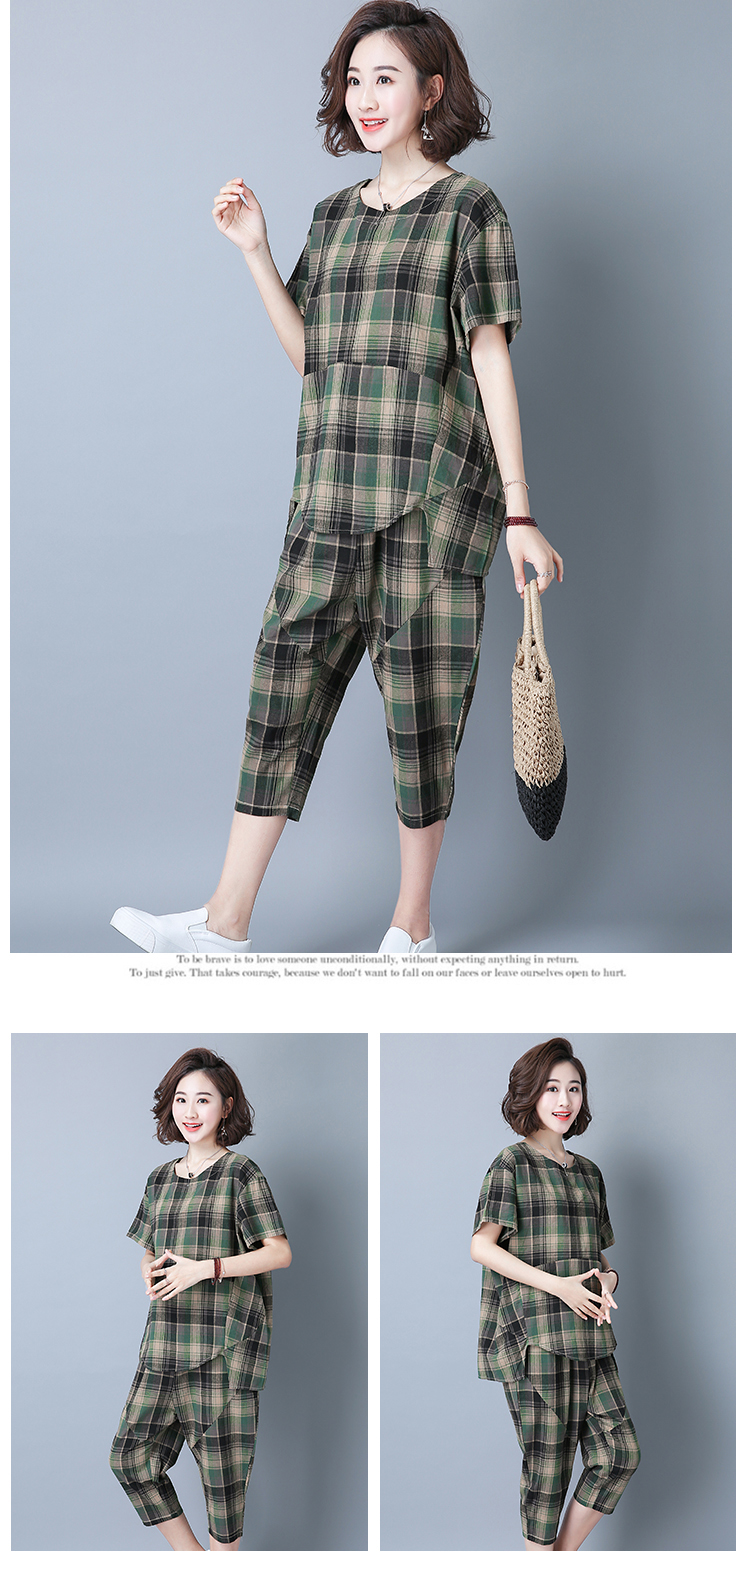 2019 Summer Plaid Cotton Linen Two Piece Sets Outfits Women Plus Size Short Sleeve Tops And Cropped Pants Casual Suits Red Green 50